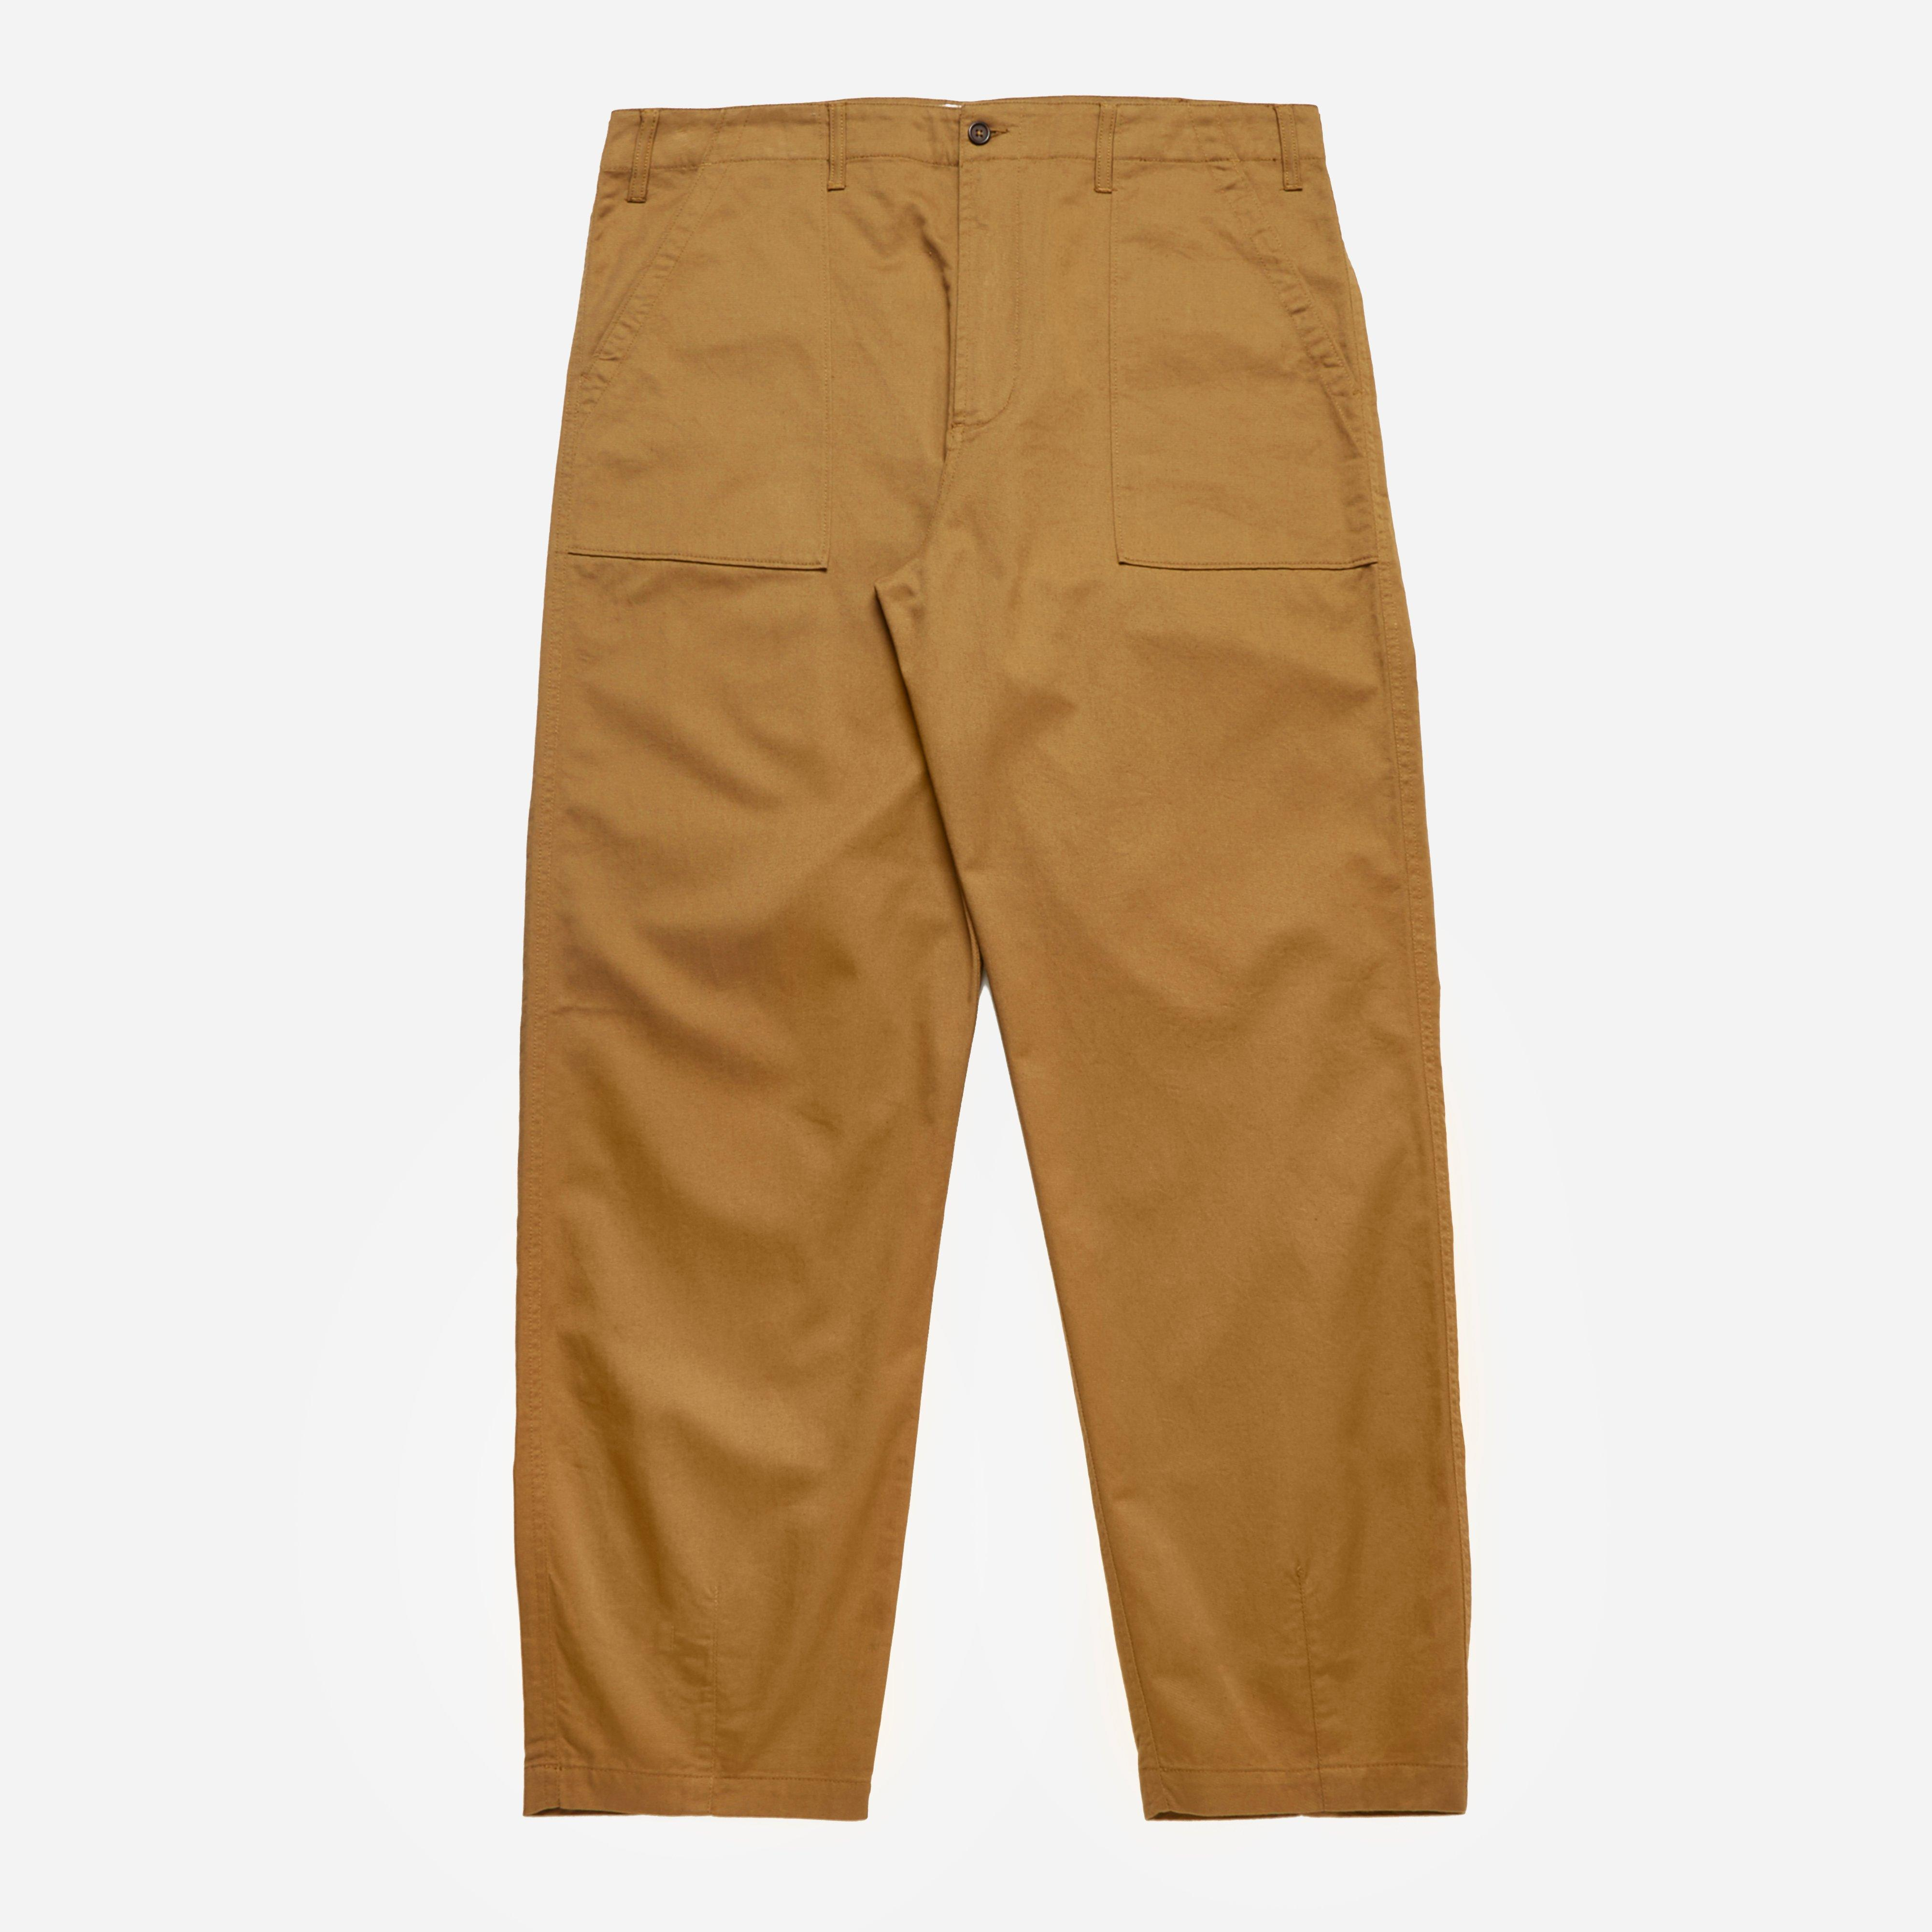 Universal Works Twill Fatigue Pant